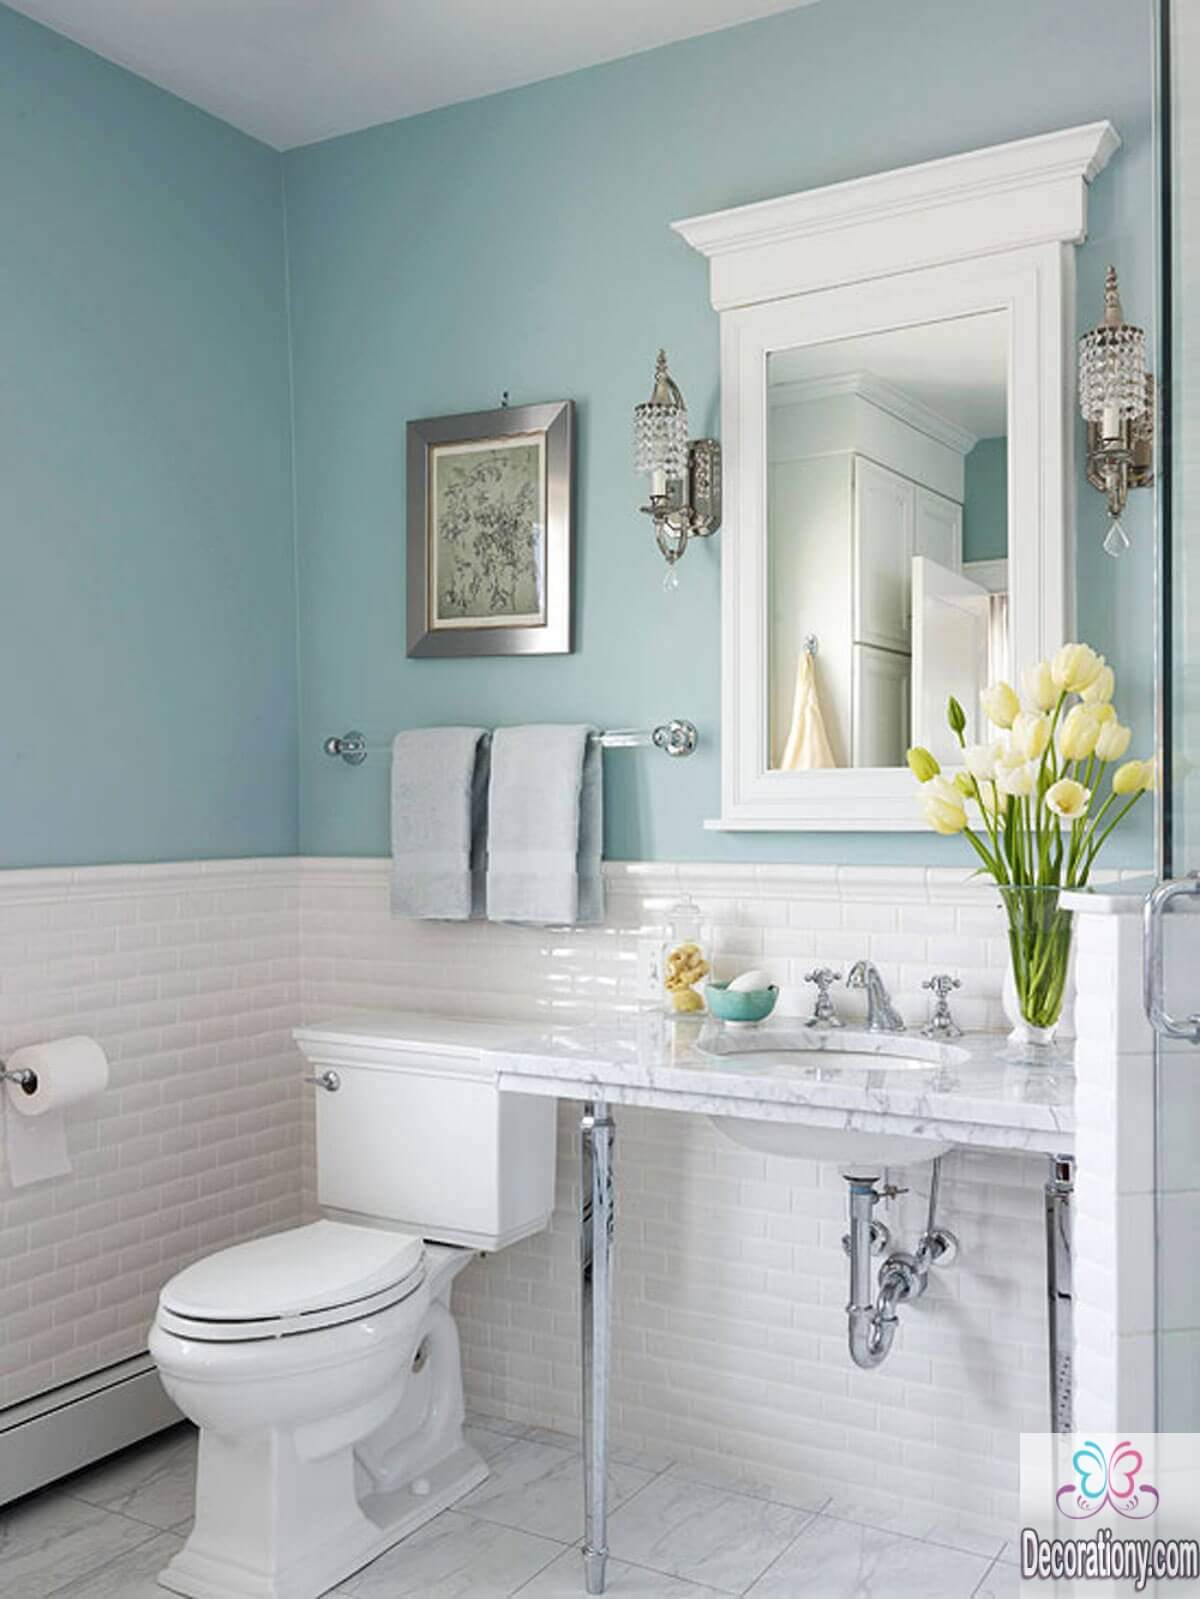 10 affordable colors for small bathrooms decoration y for Best bathroom ideas